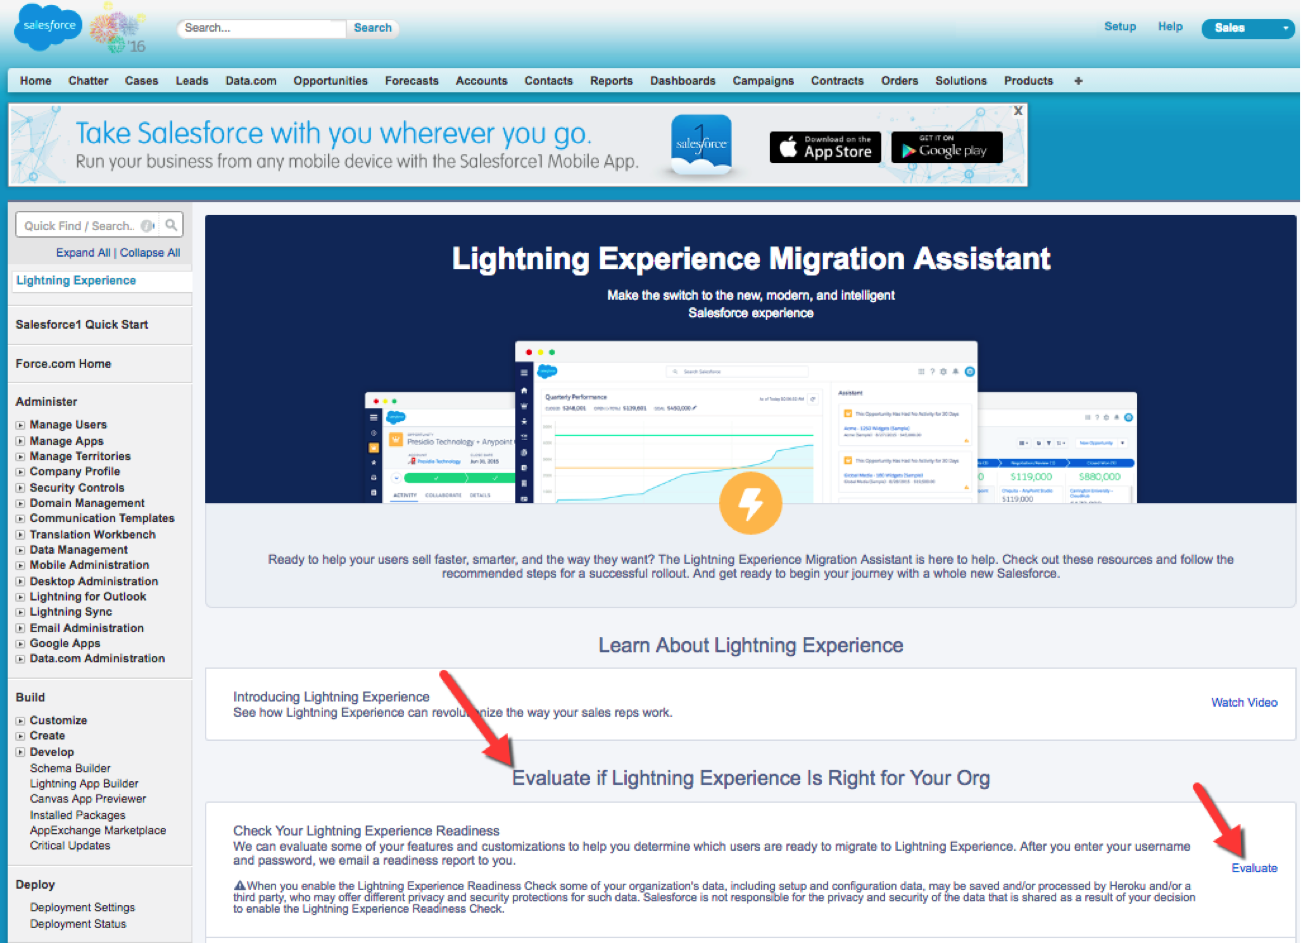 How Do I Know If My Org Is Ready for Lightning Experience?